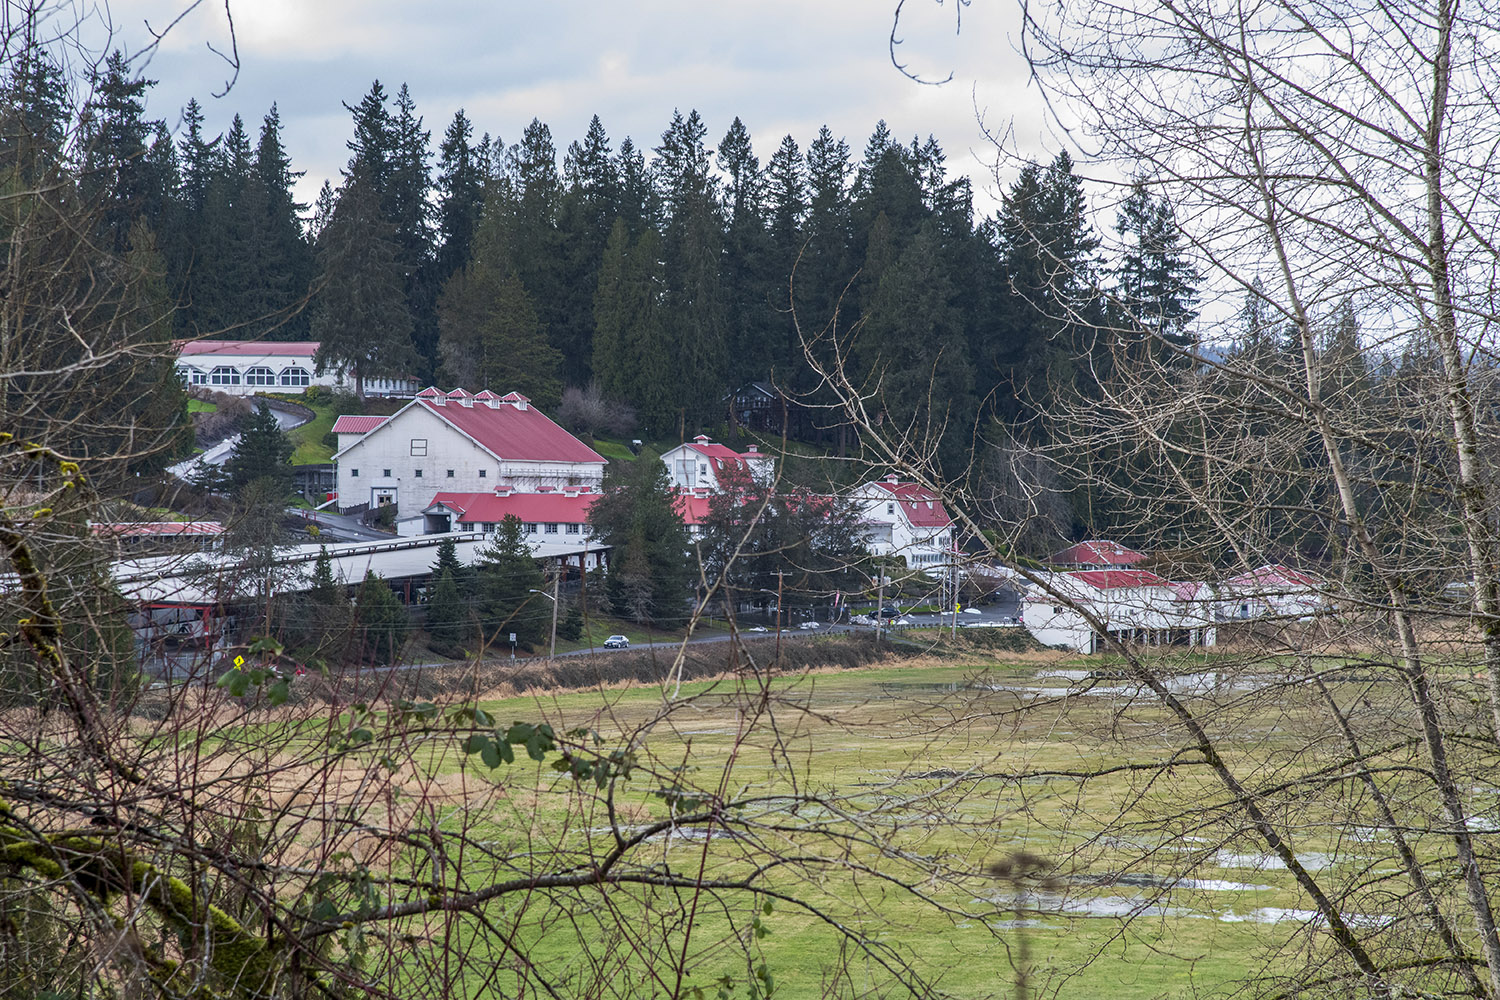 Tucked away in the lush hills of Snoqualmie Valley, E.A. purchased just under 400 acres of farmland knowing it would soon become connected to the railroad. (Rachael Jones / Seattle Refined)